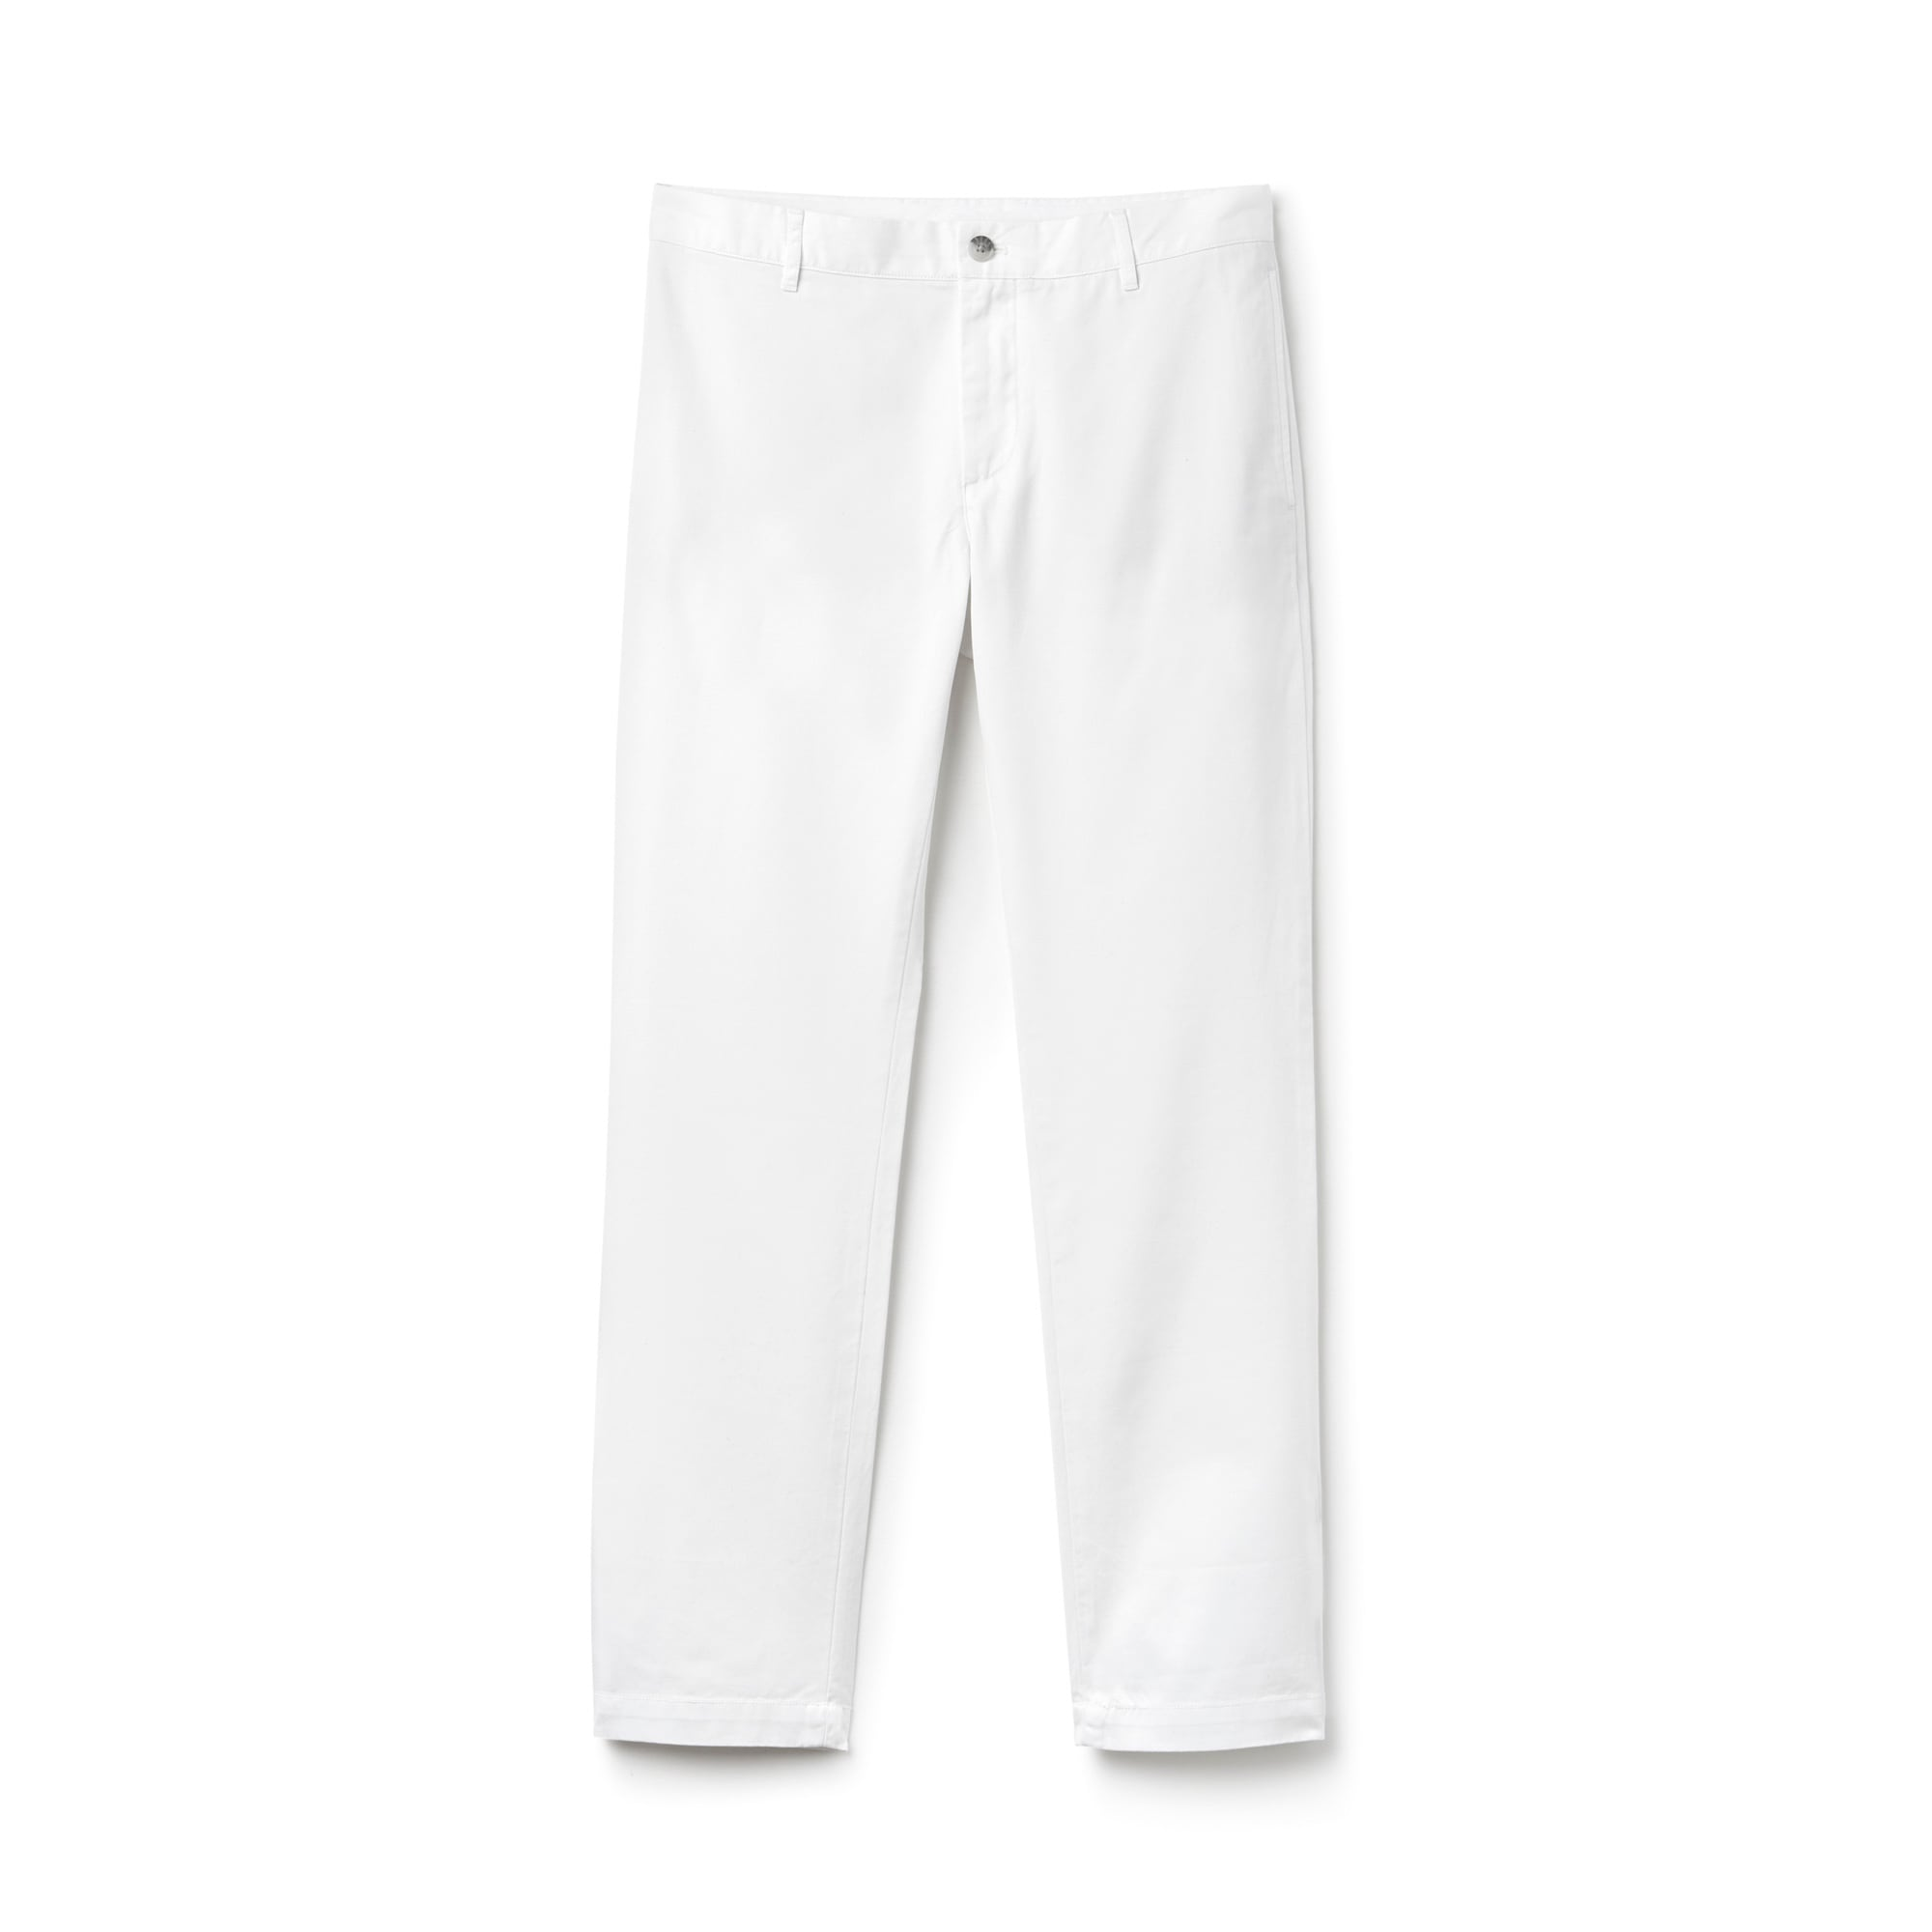 Men's Regular Fit Cotton Twill Chino Pants